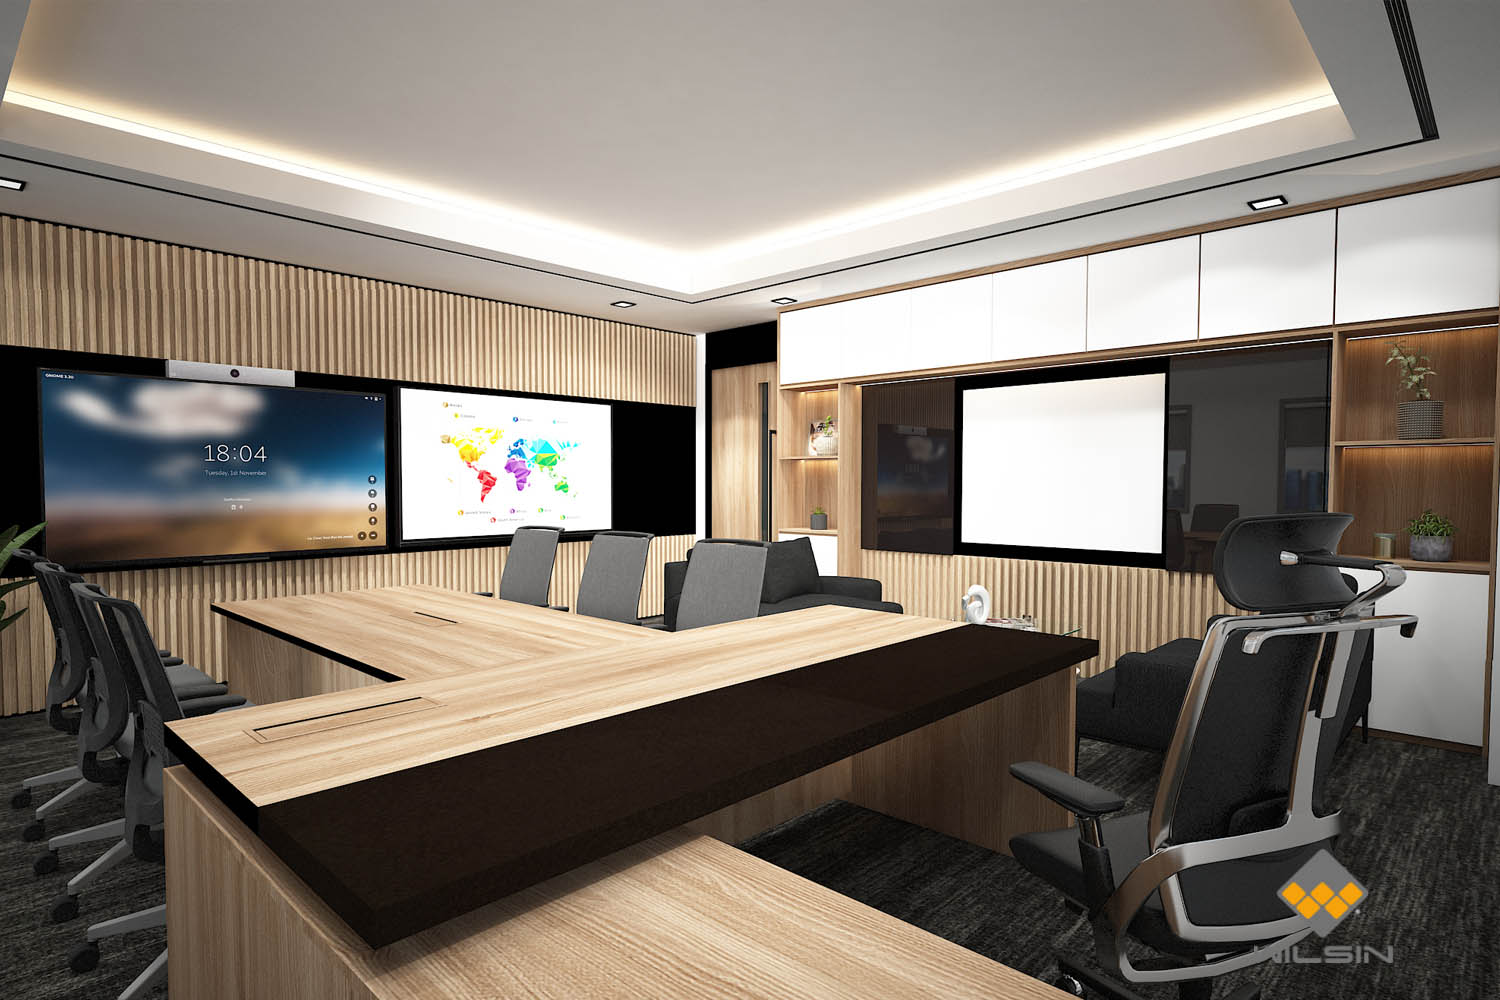 Wilsin Singapore Design Render of Executive Management Office With Meeting Table